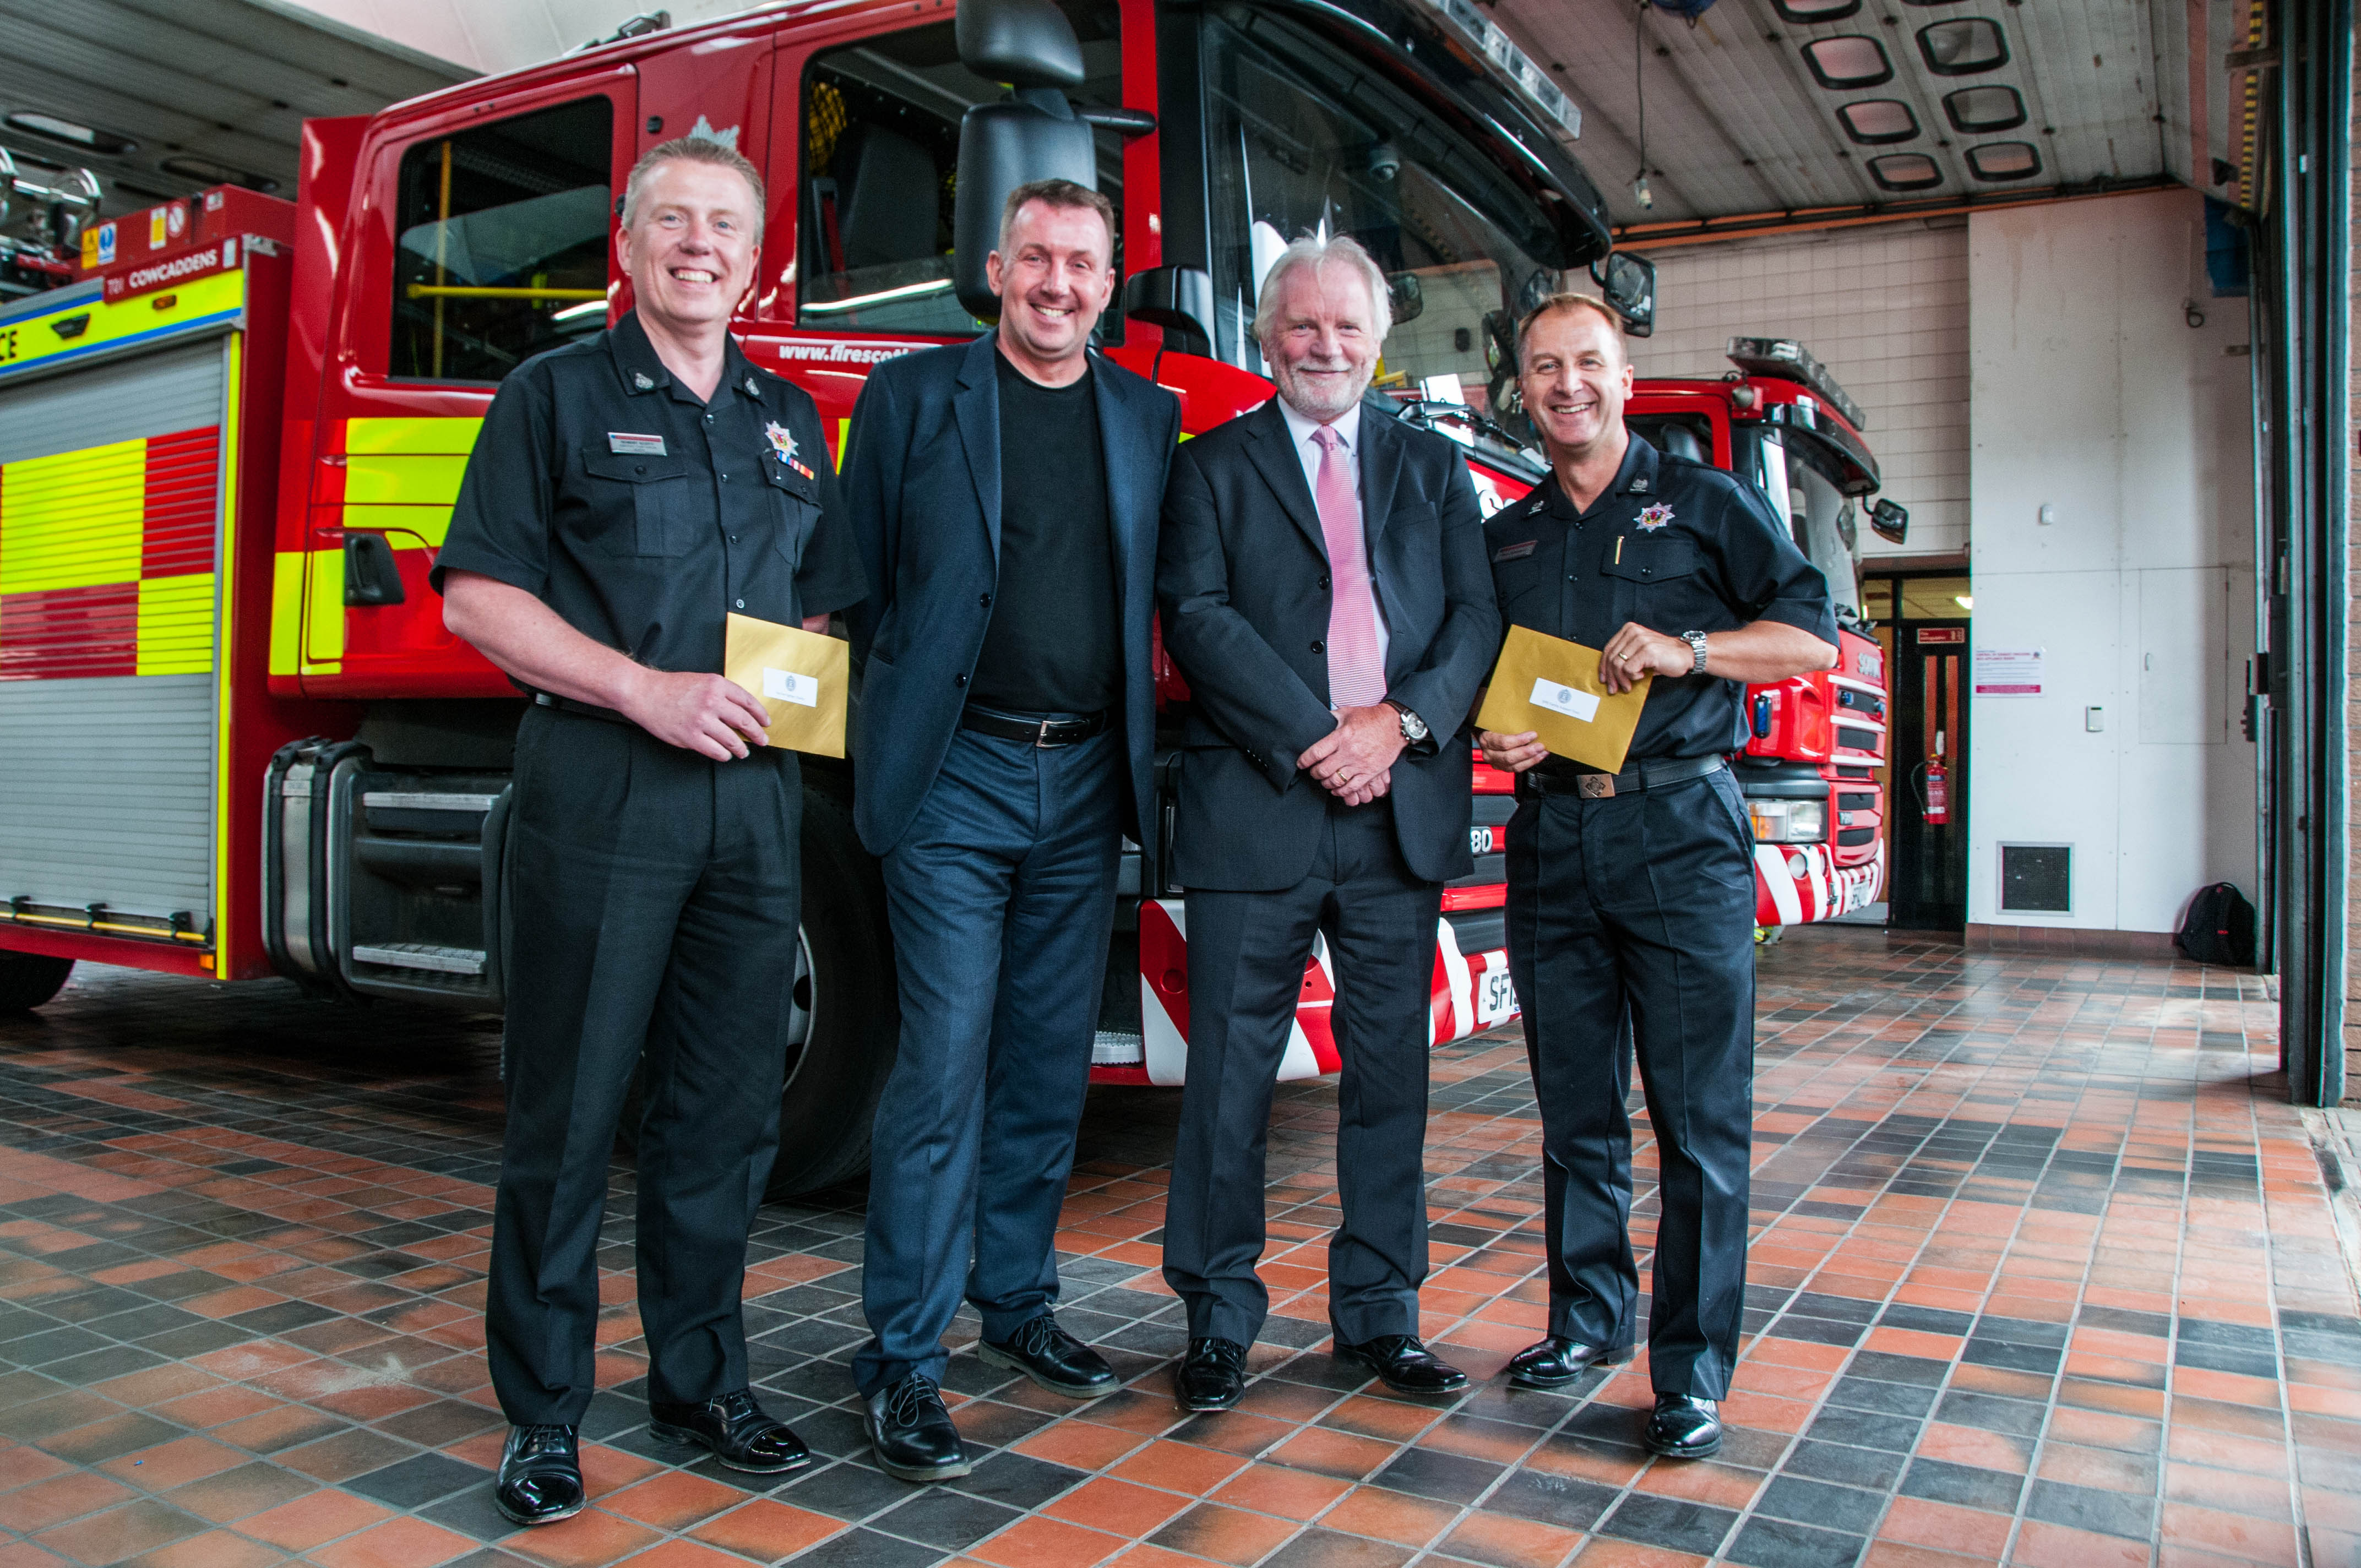 Architects donate to SFRS charities